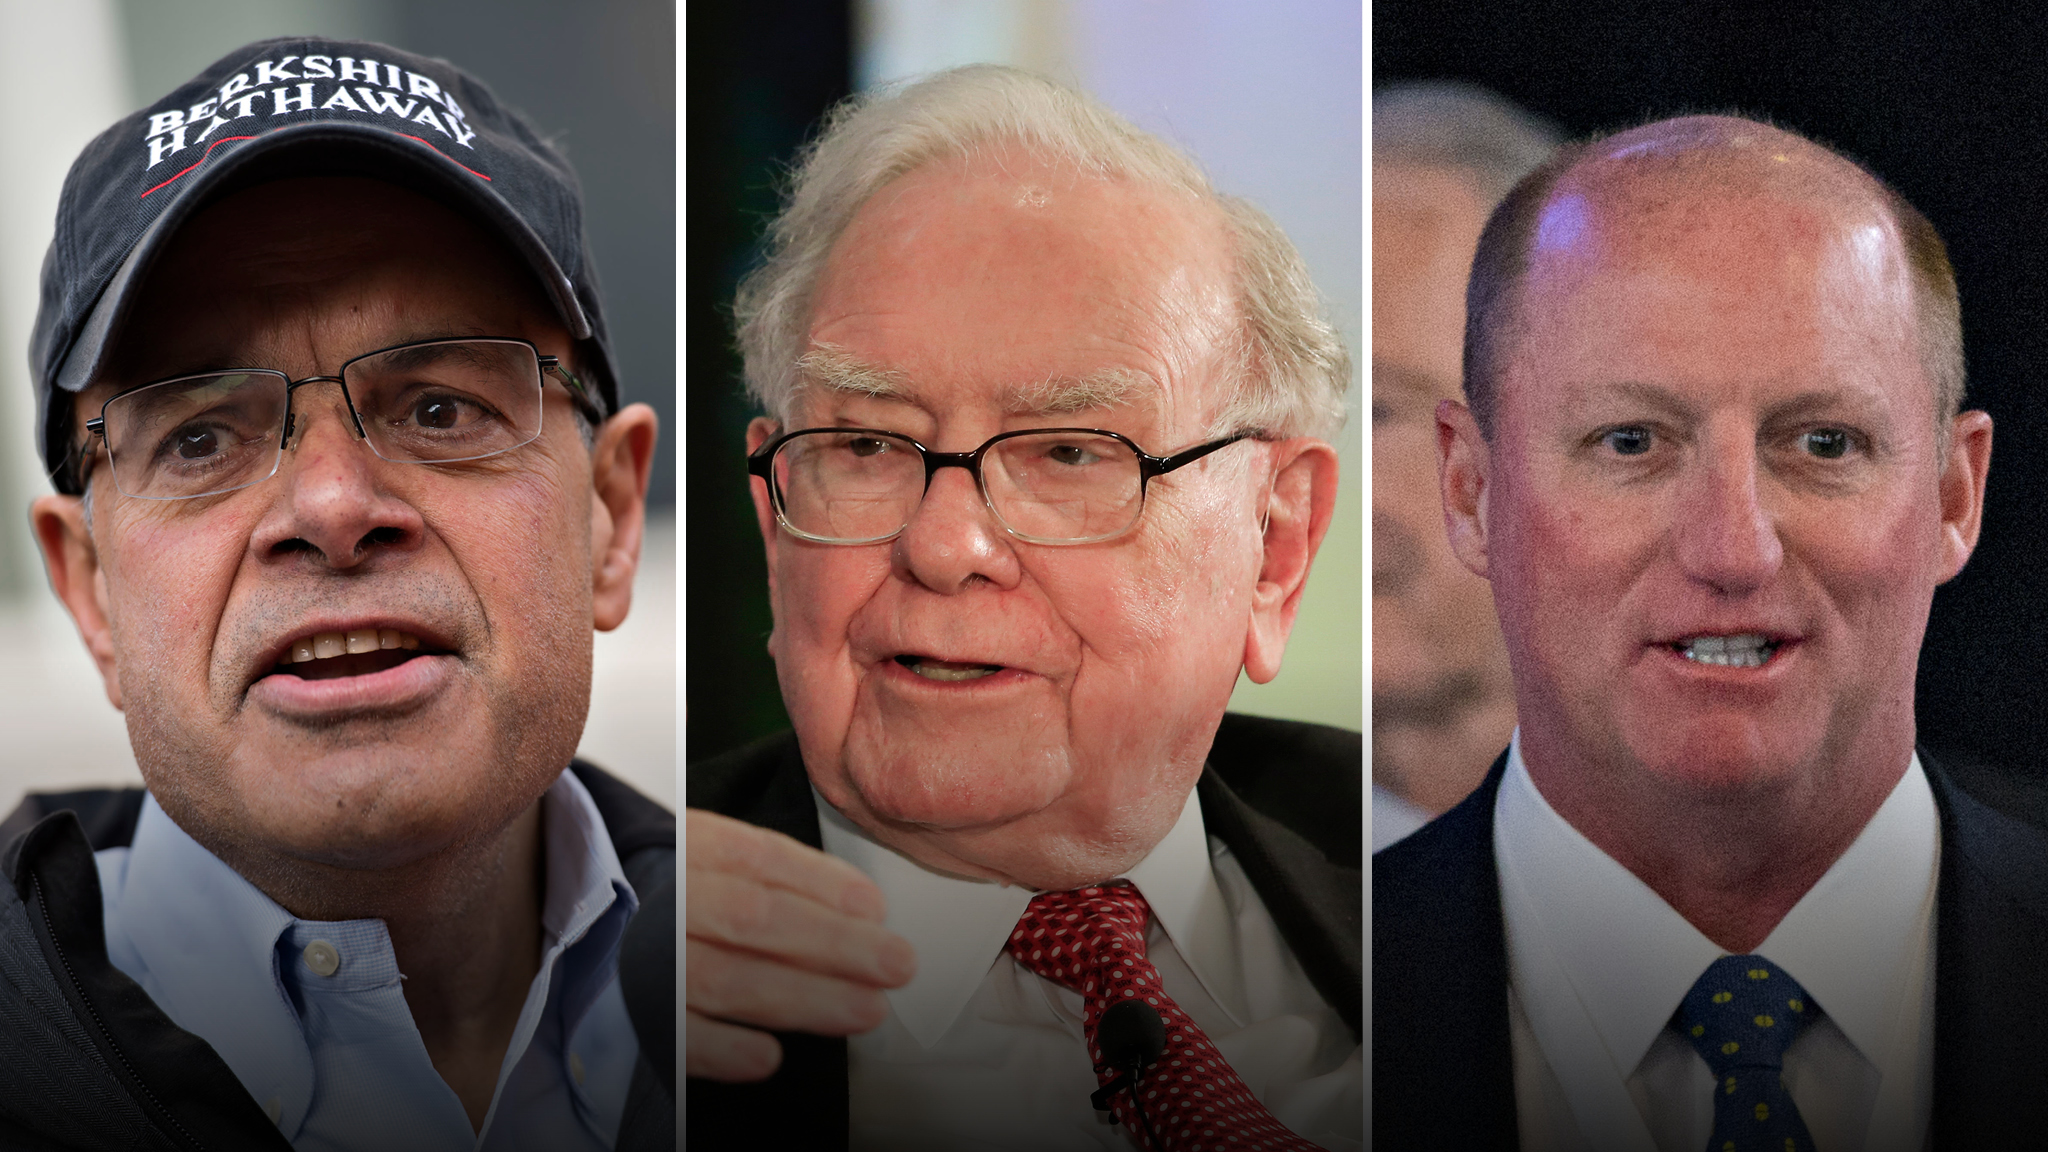 Warren Buffett promotes 2 potential Berkshire successors